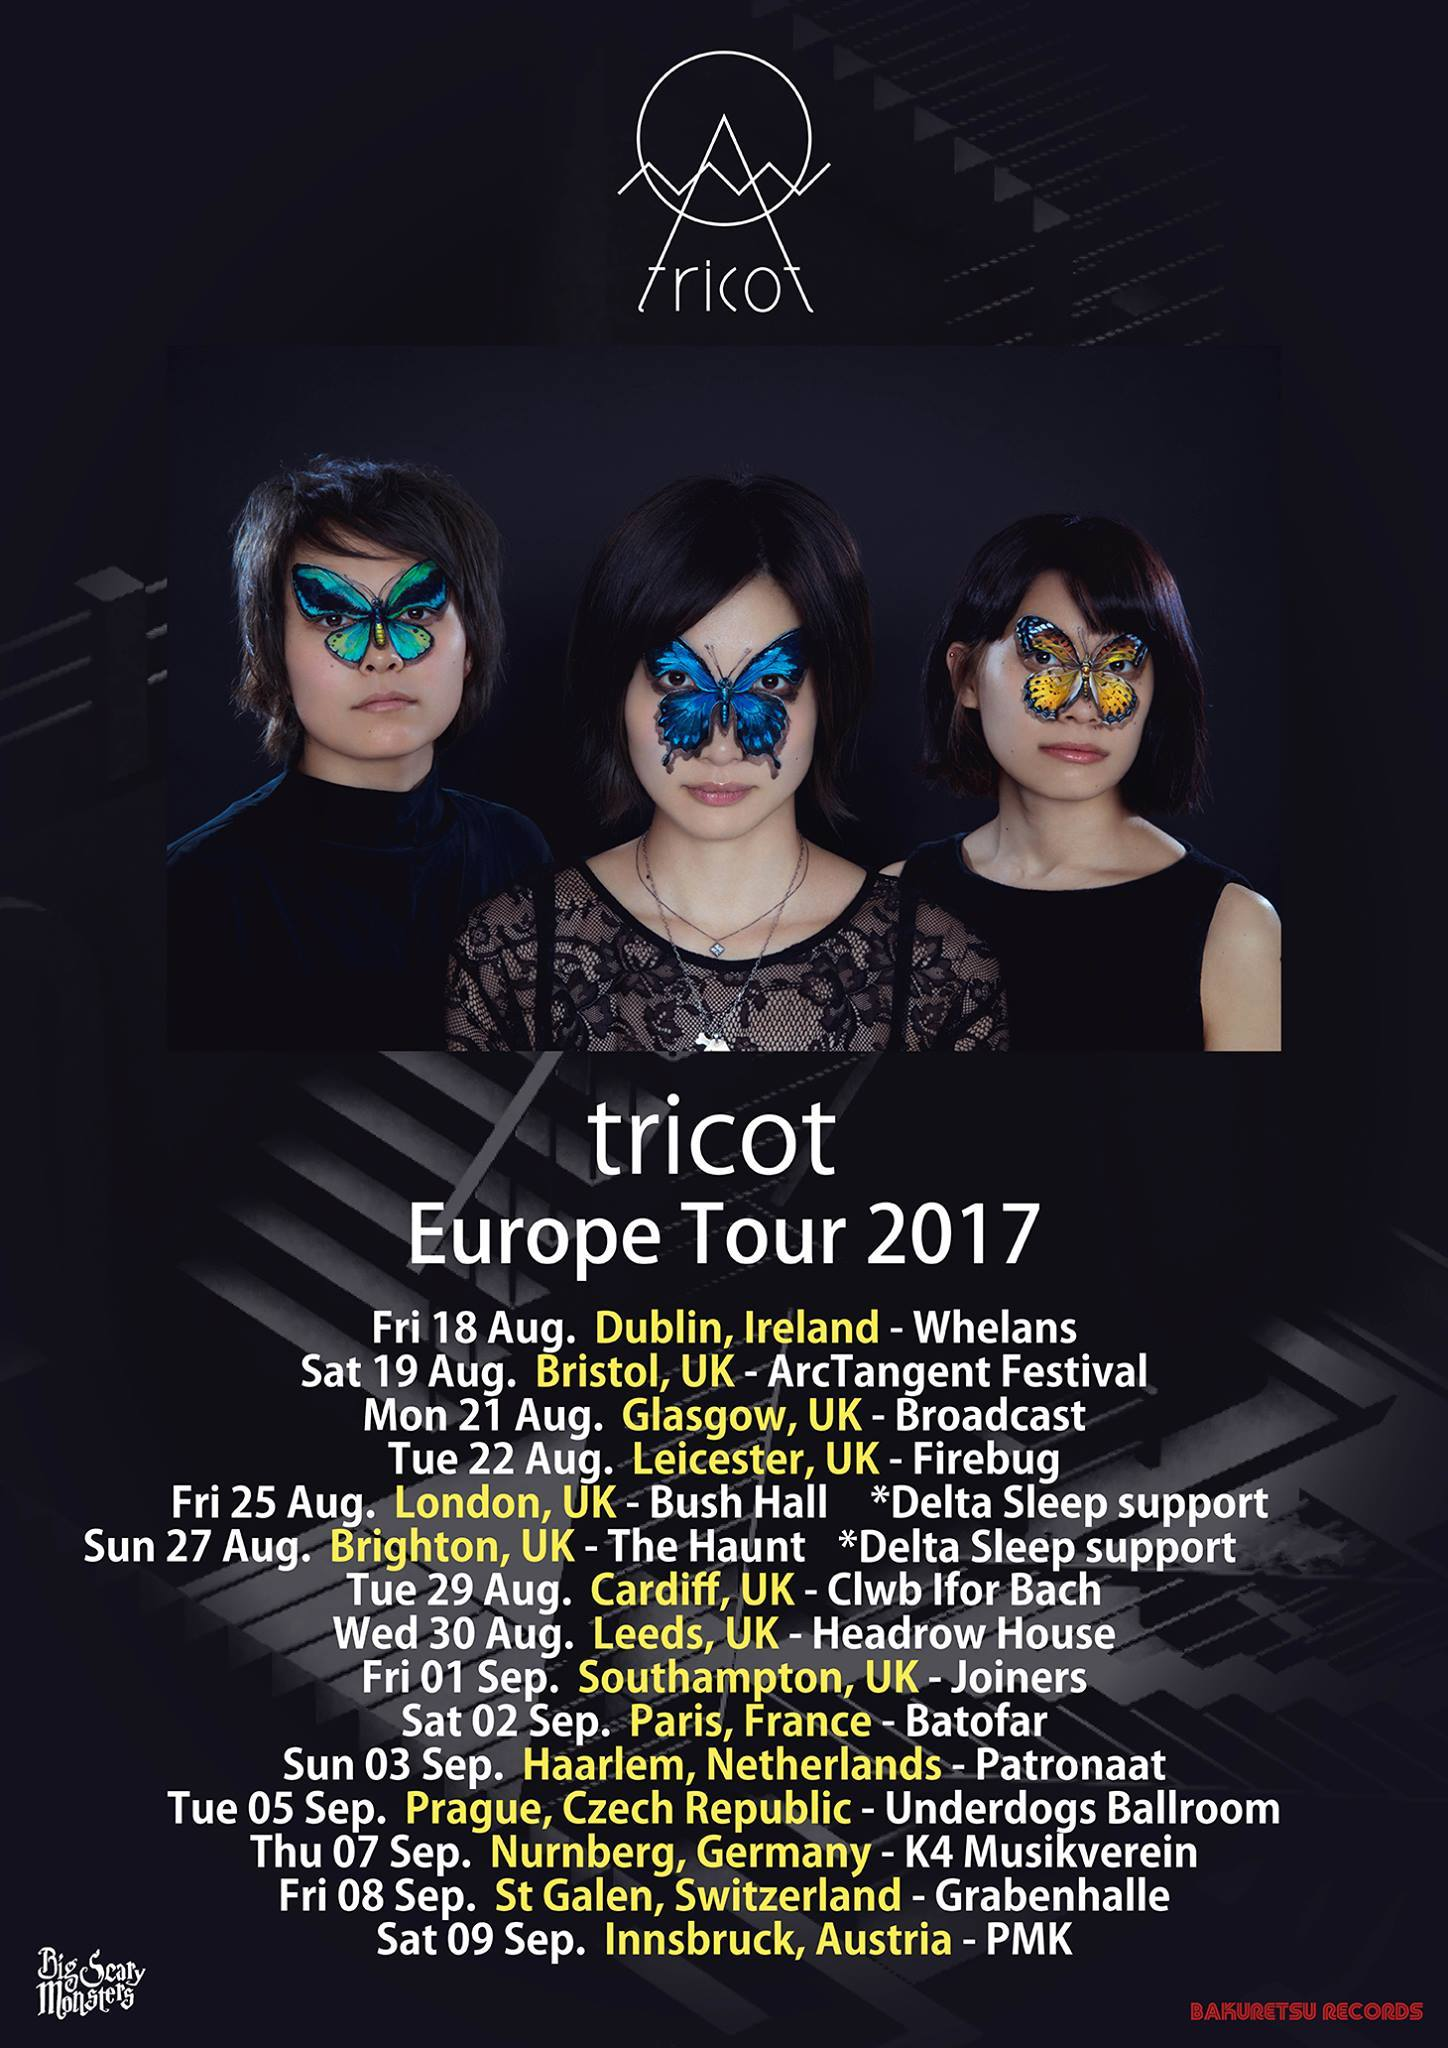 Tricot band interview